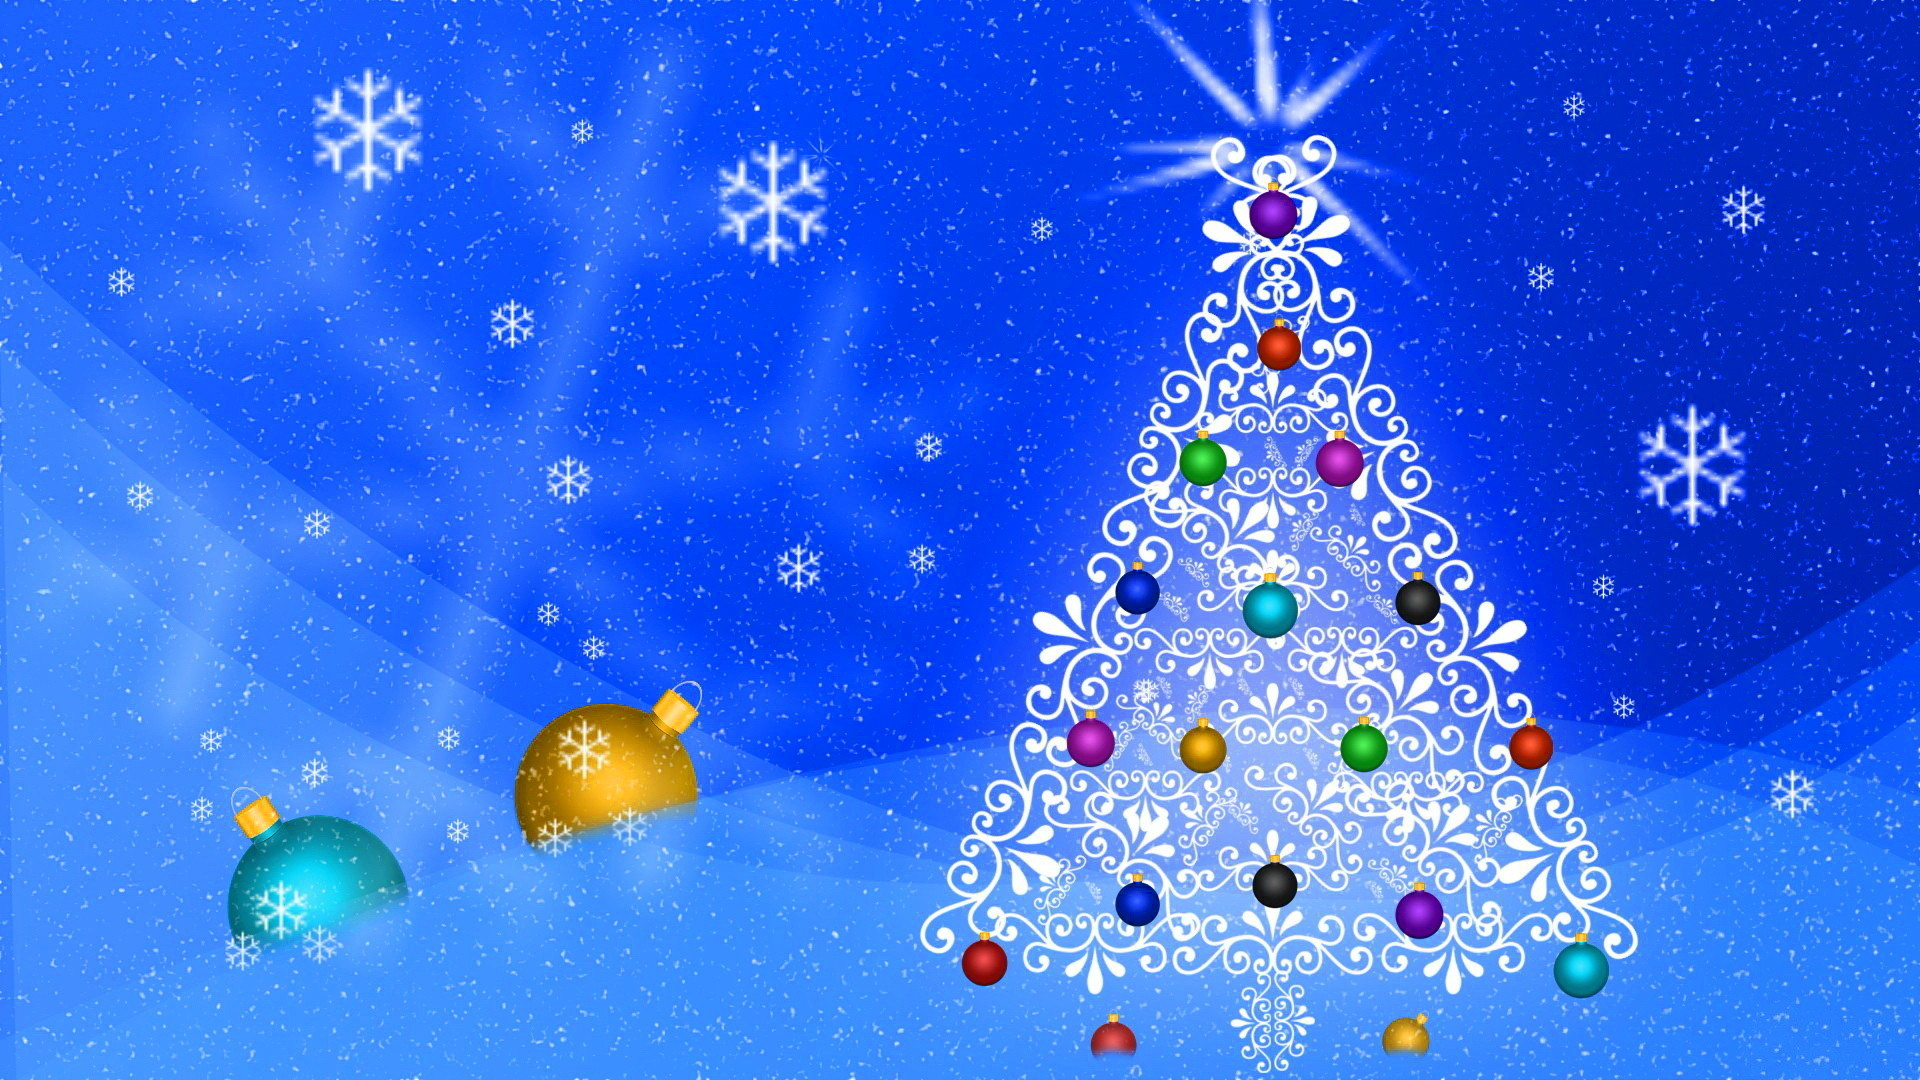 1920x1080 Cute christmas desktop backgrounds